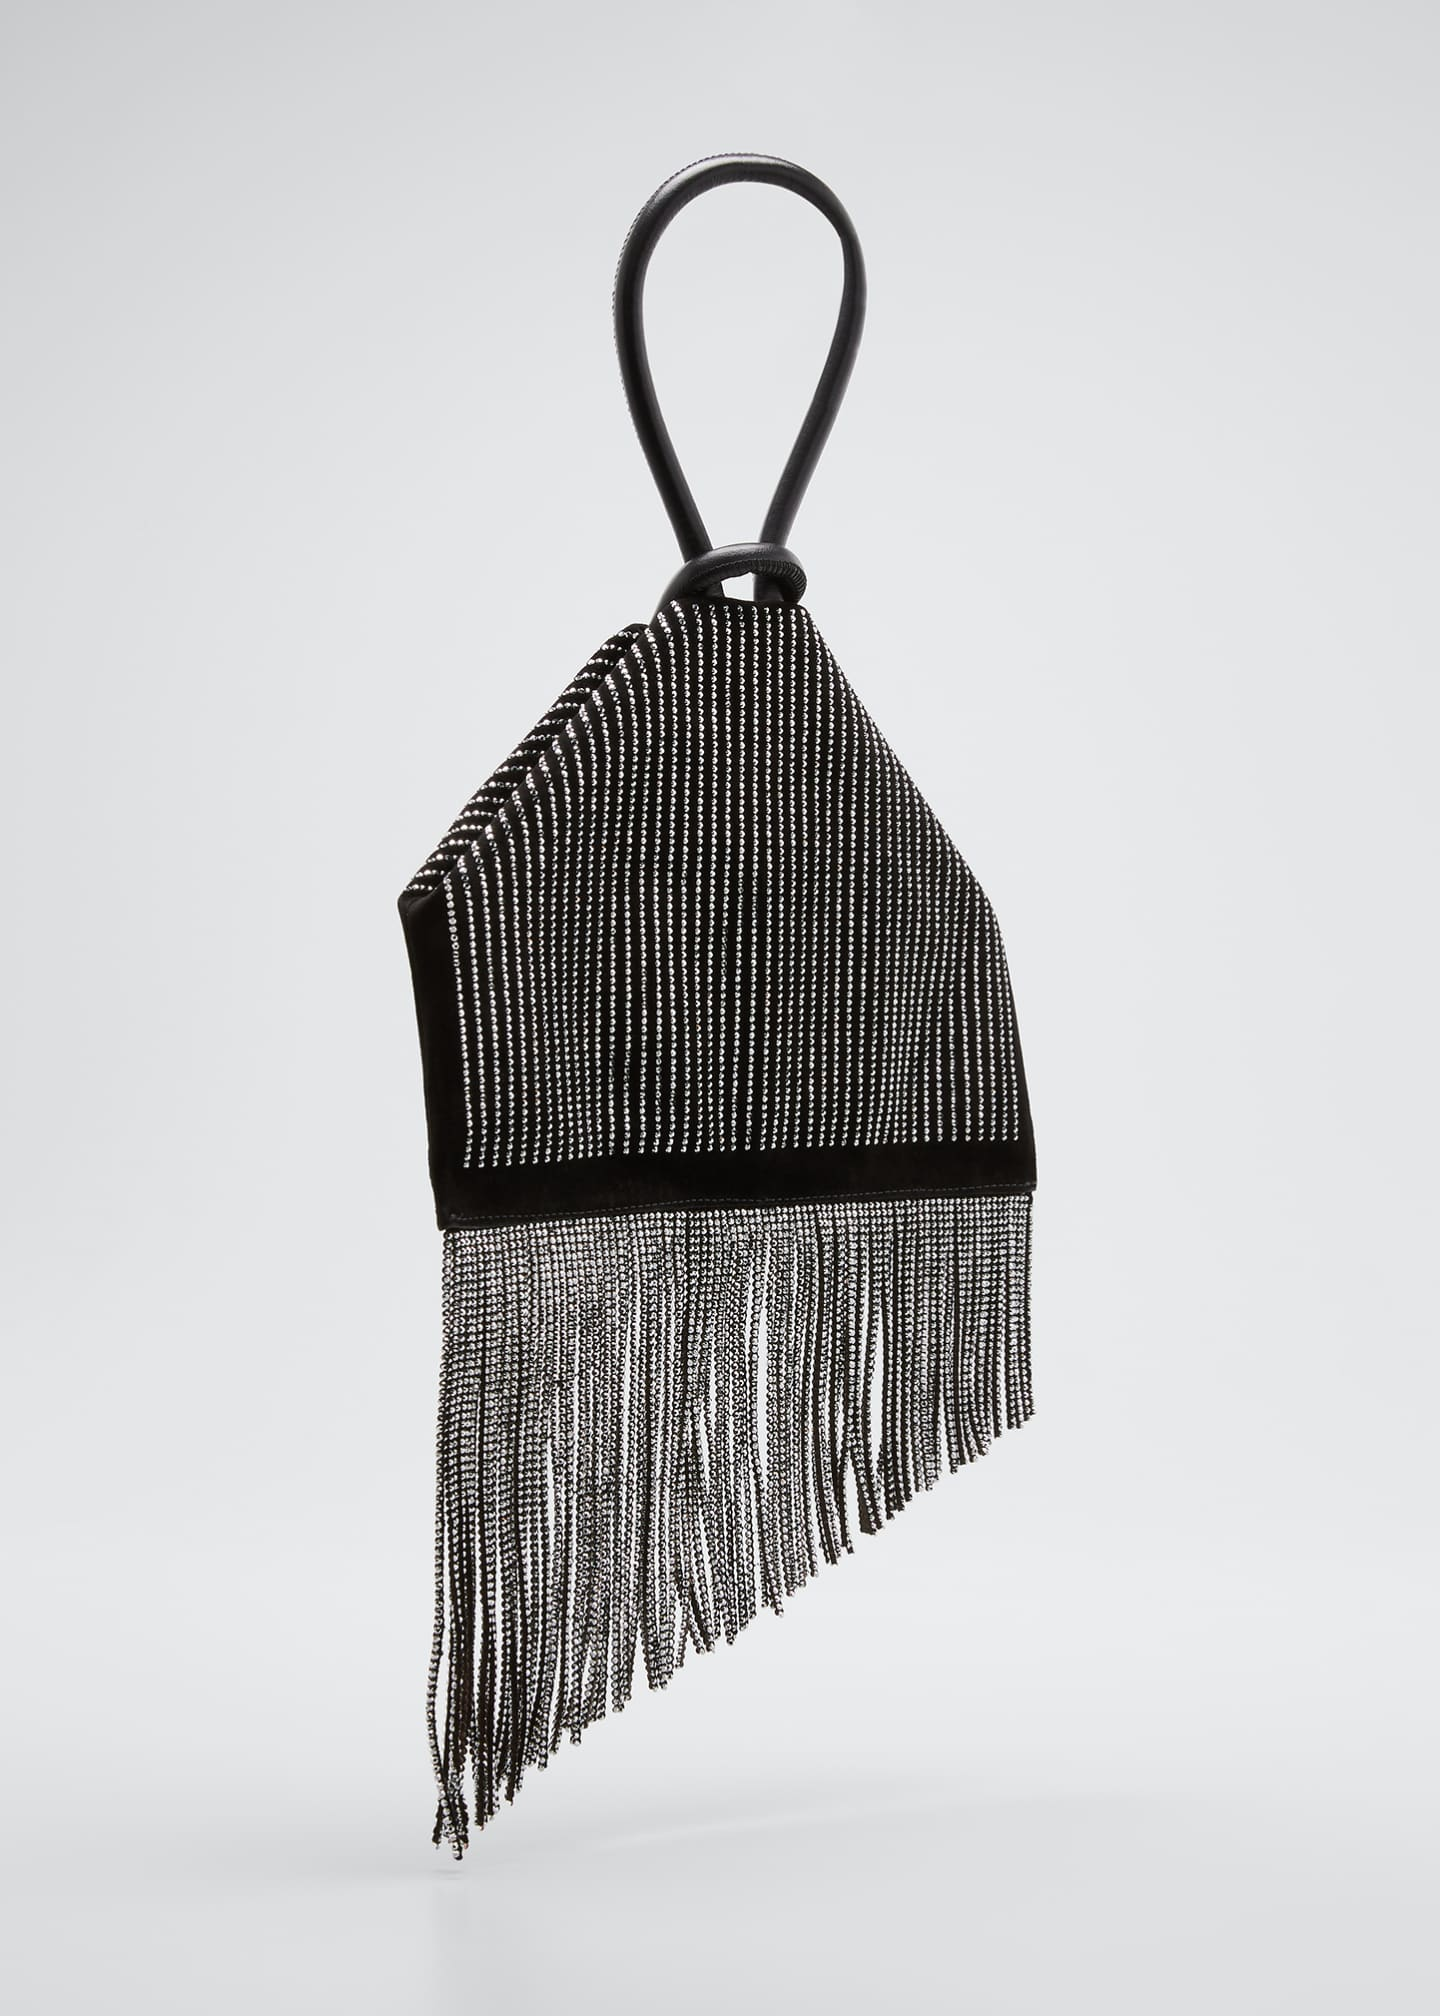 Image 3 of 5: Berlinguinio Strass Fringed Suede Clutch Bag